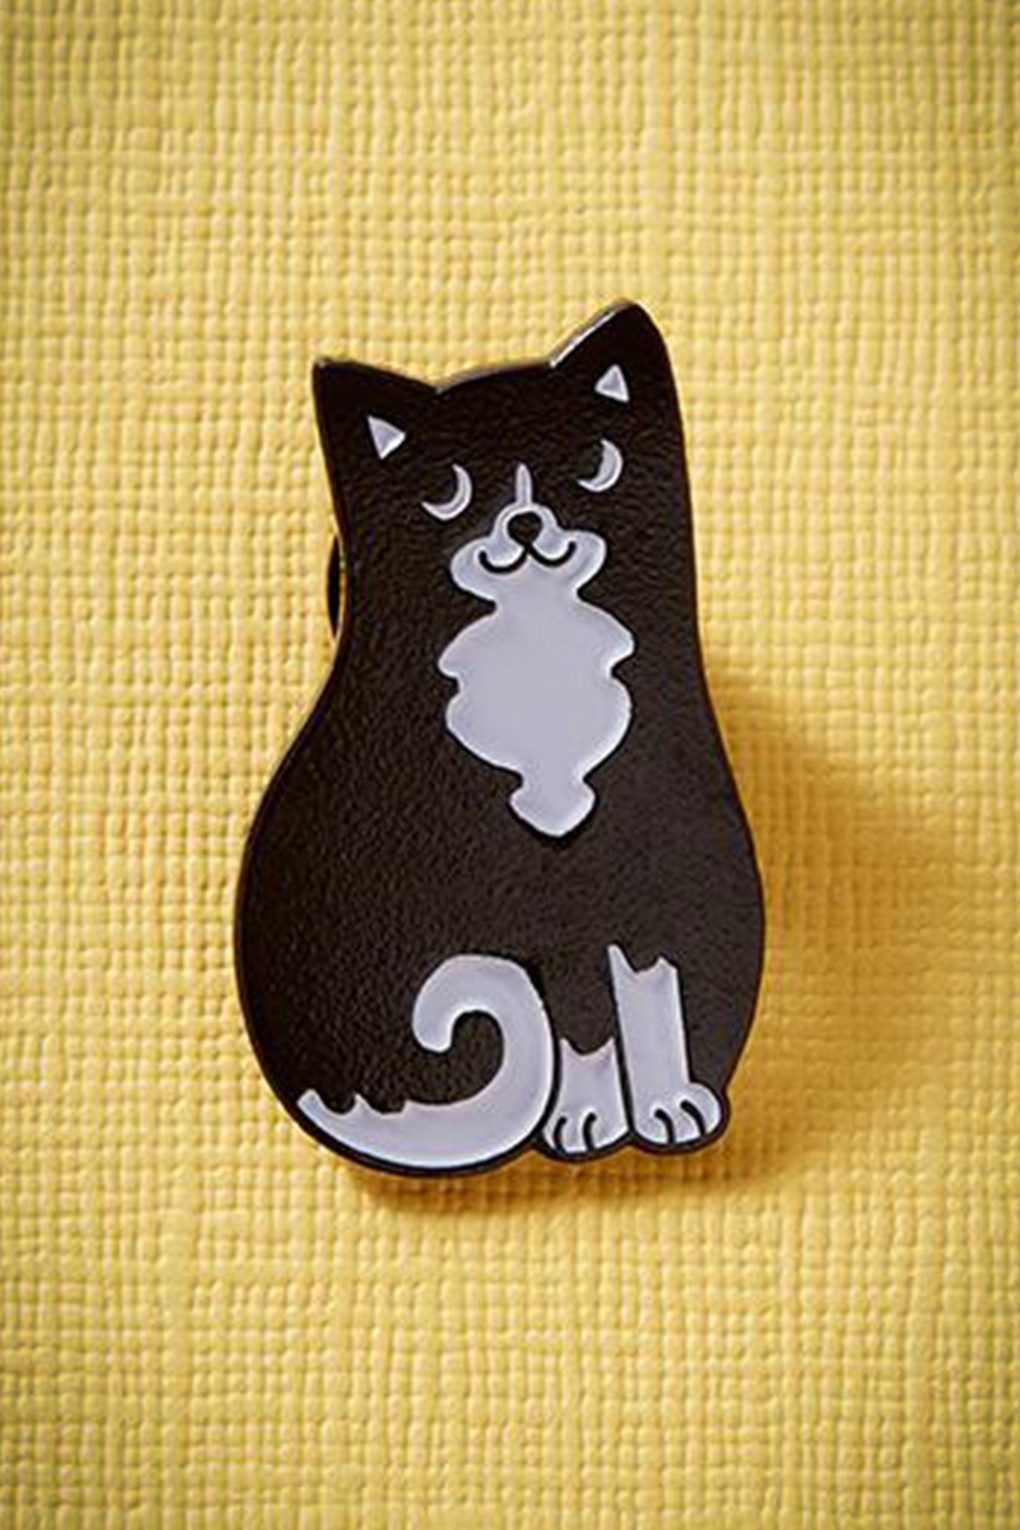 1960s Costume Jewelry – 1960s Style Jewelry 60s Black and White Cat Enamel Pin £8.05 AT vintagedancer.com